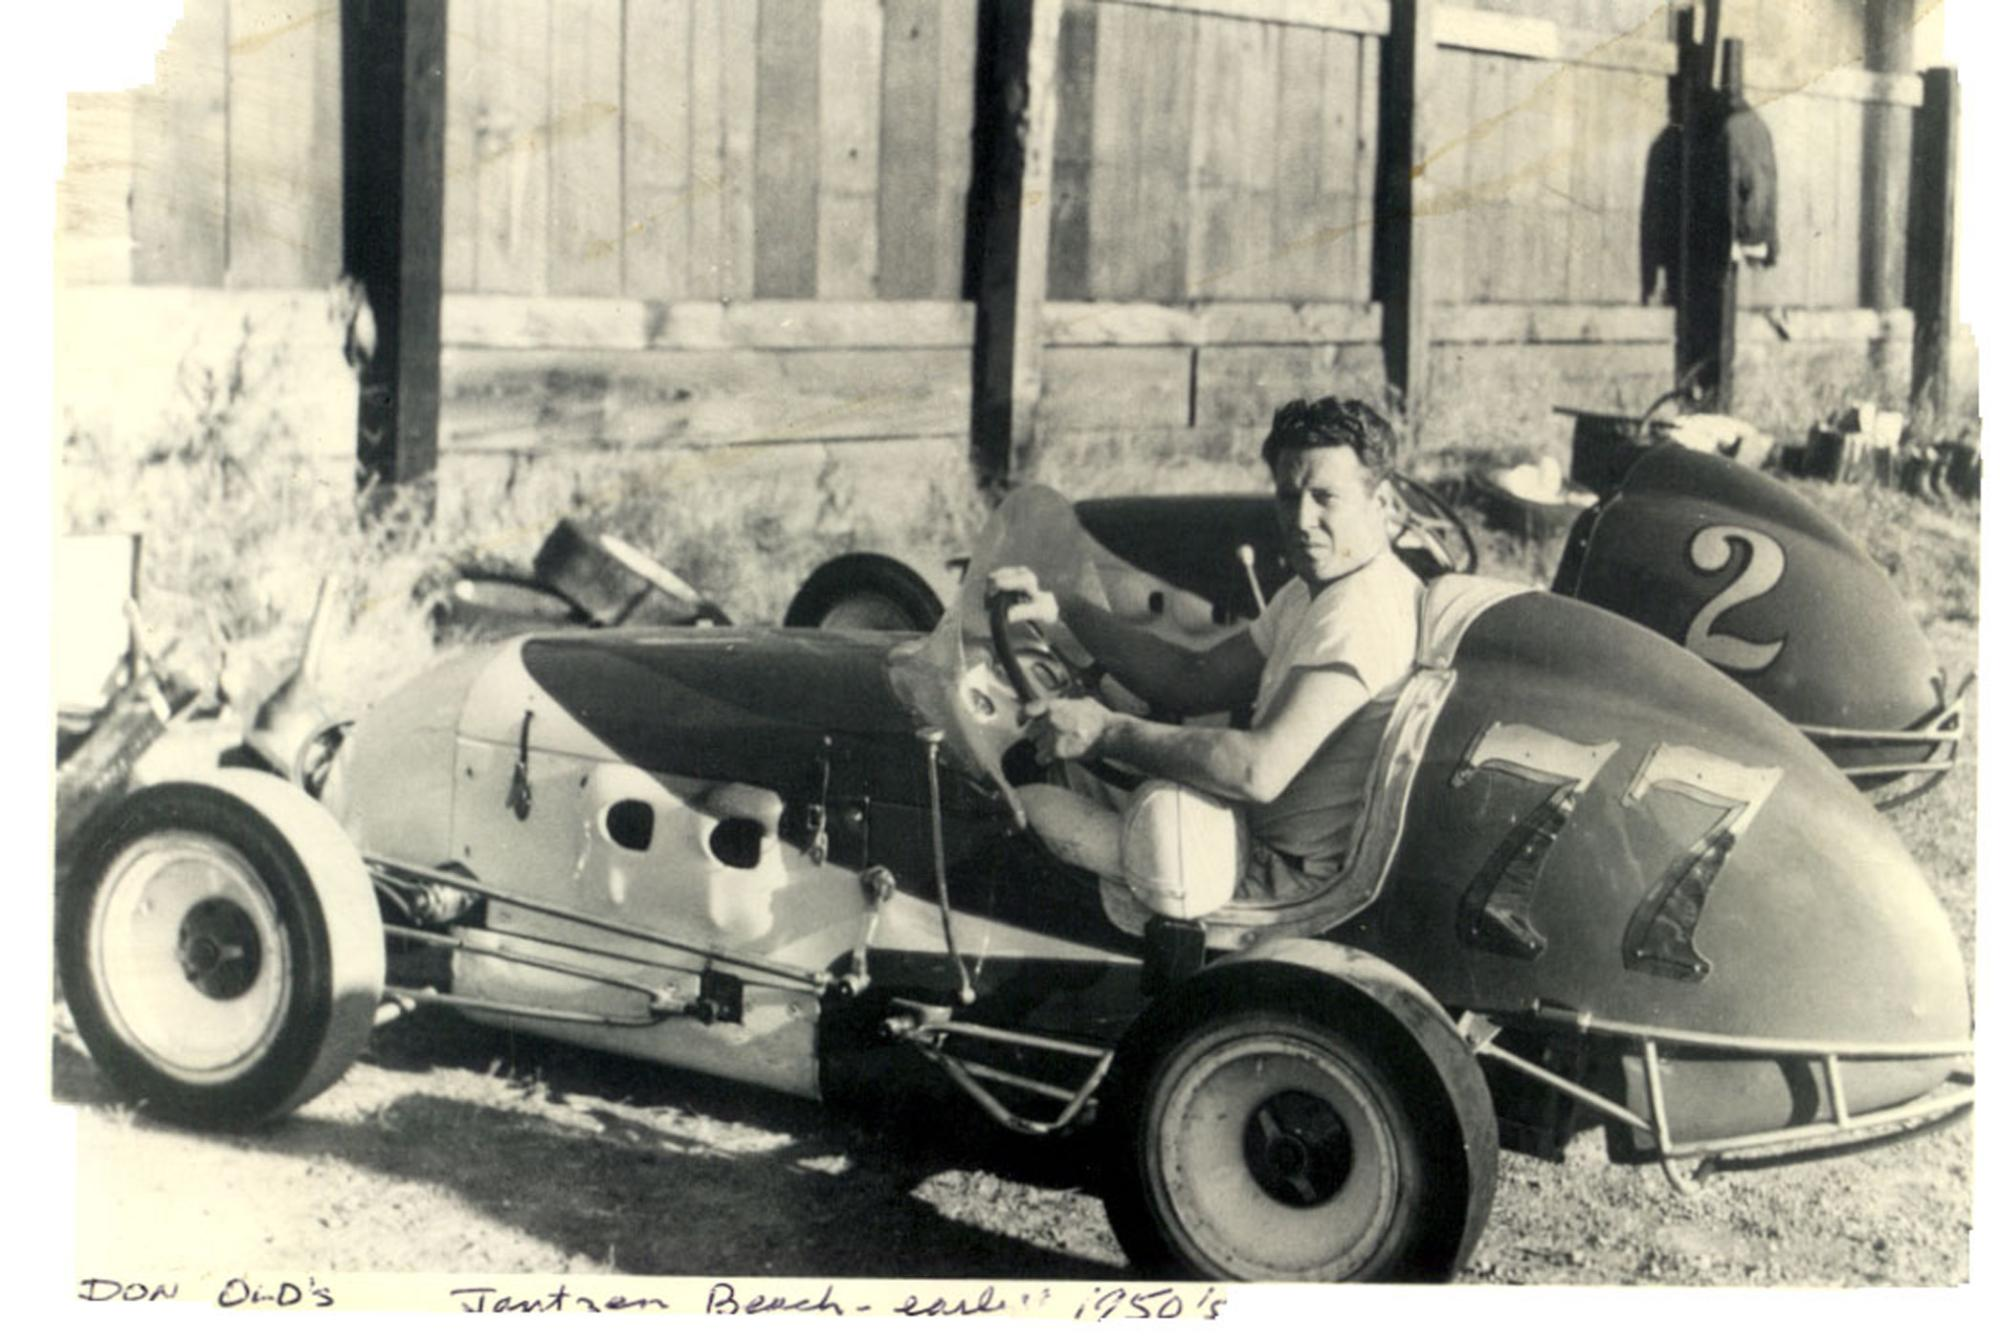 MG0153_No.77_Don_Olds_at_Jantzen_Beach_early_50_s_HR.jpg